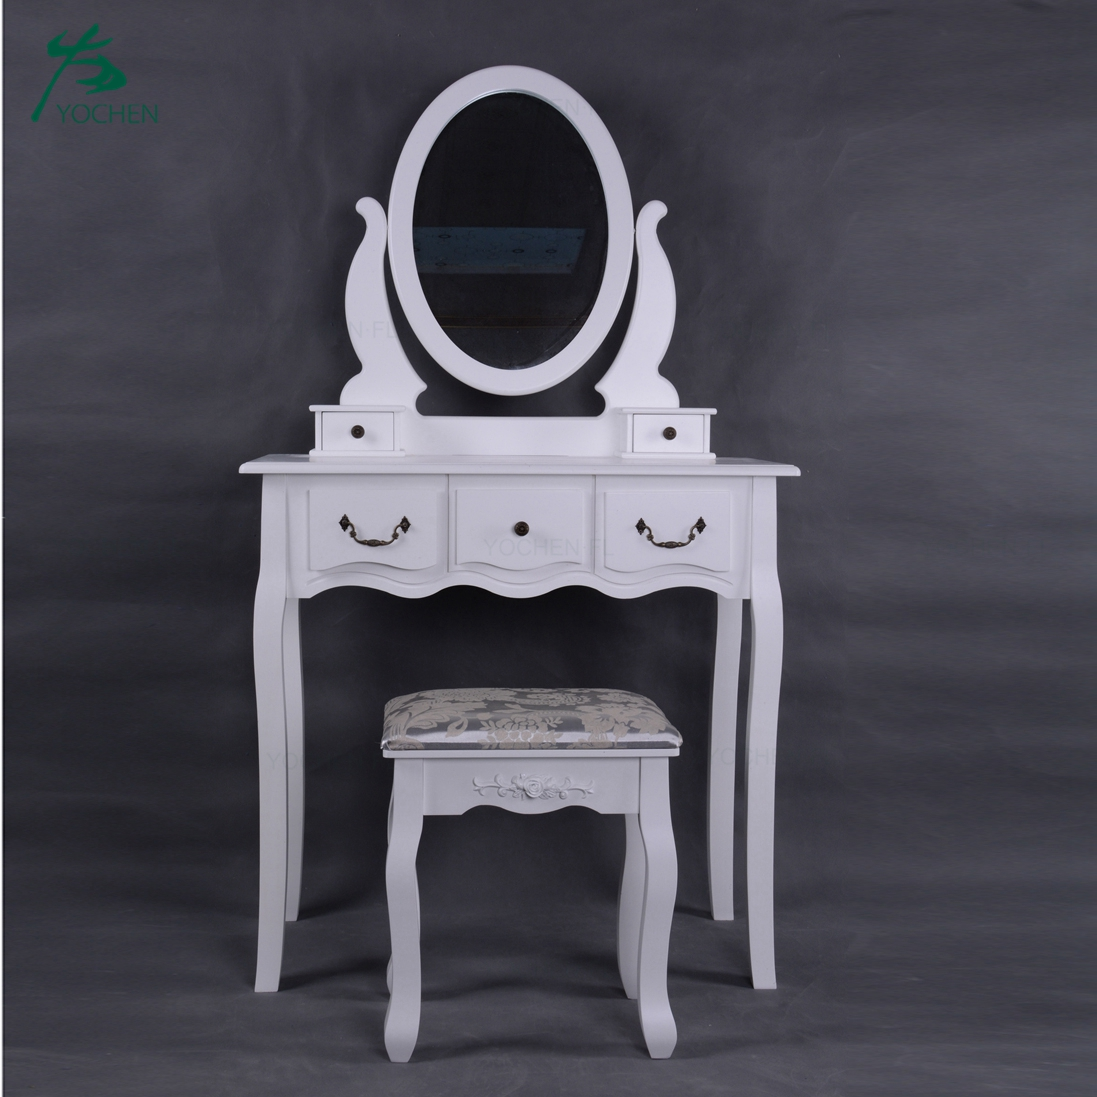 Modern Industrial Style White Rotating Dressing Table